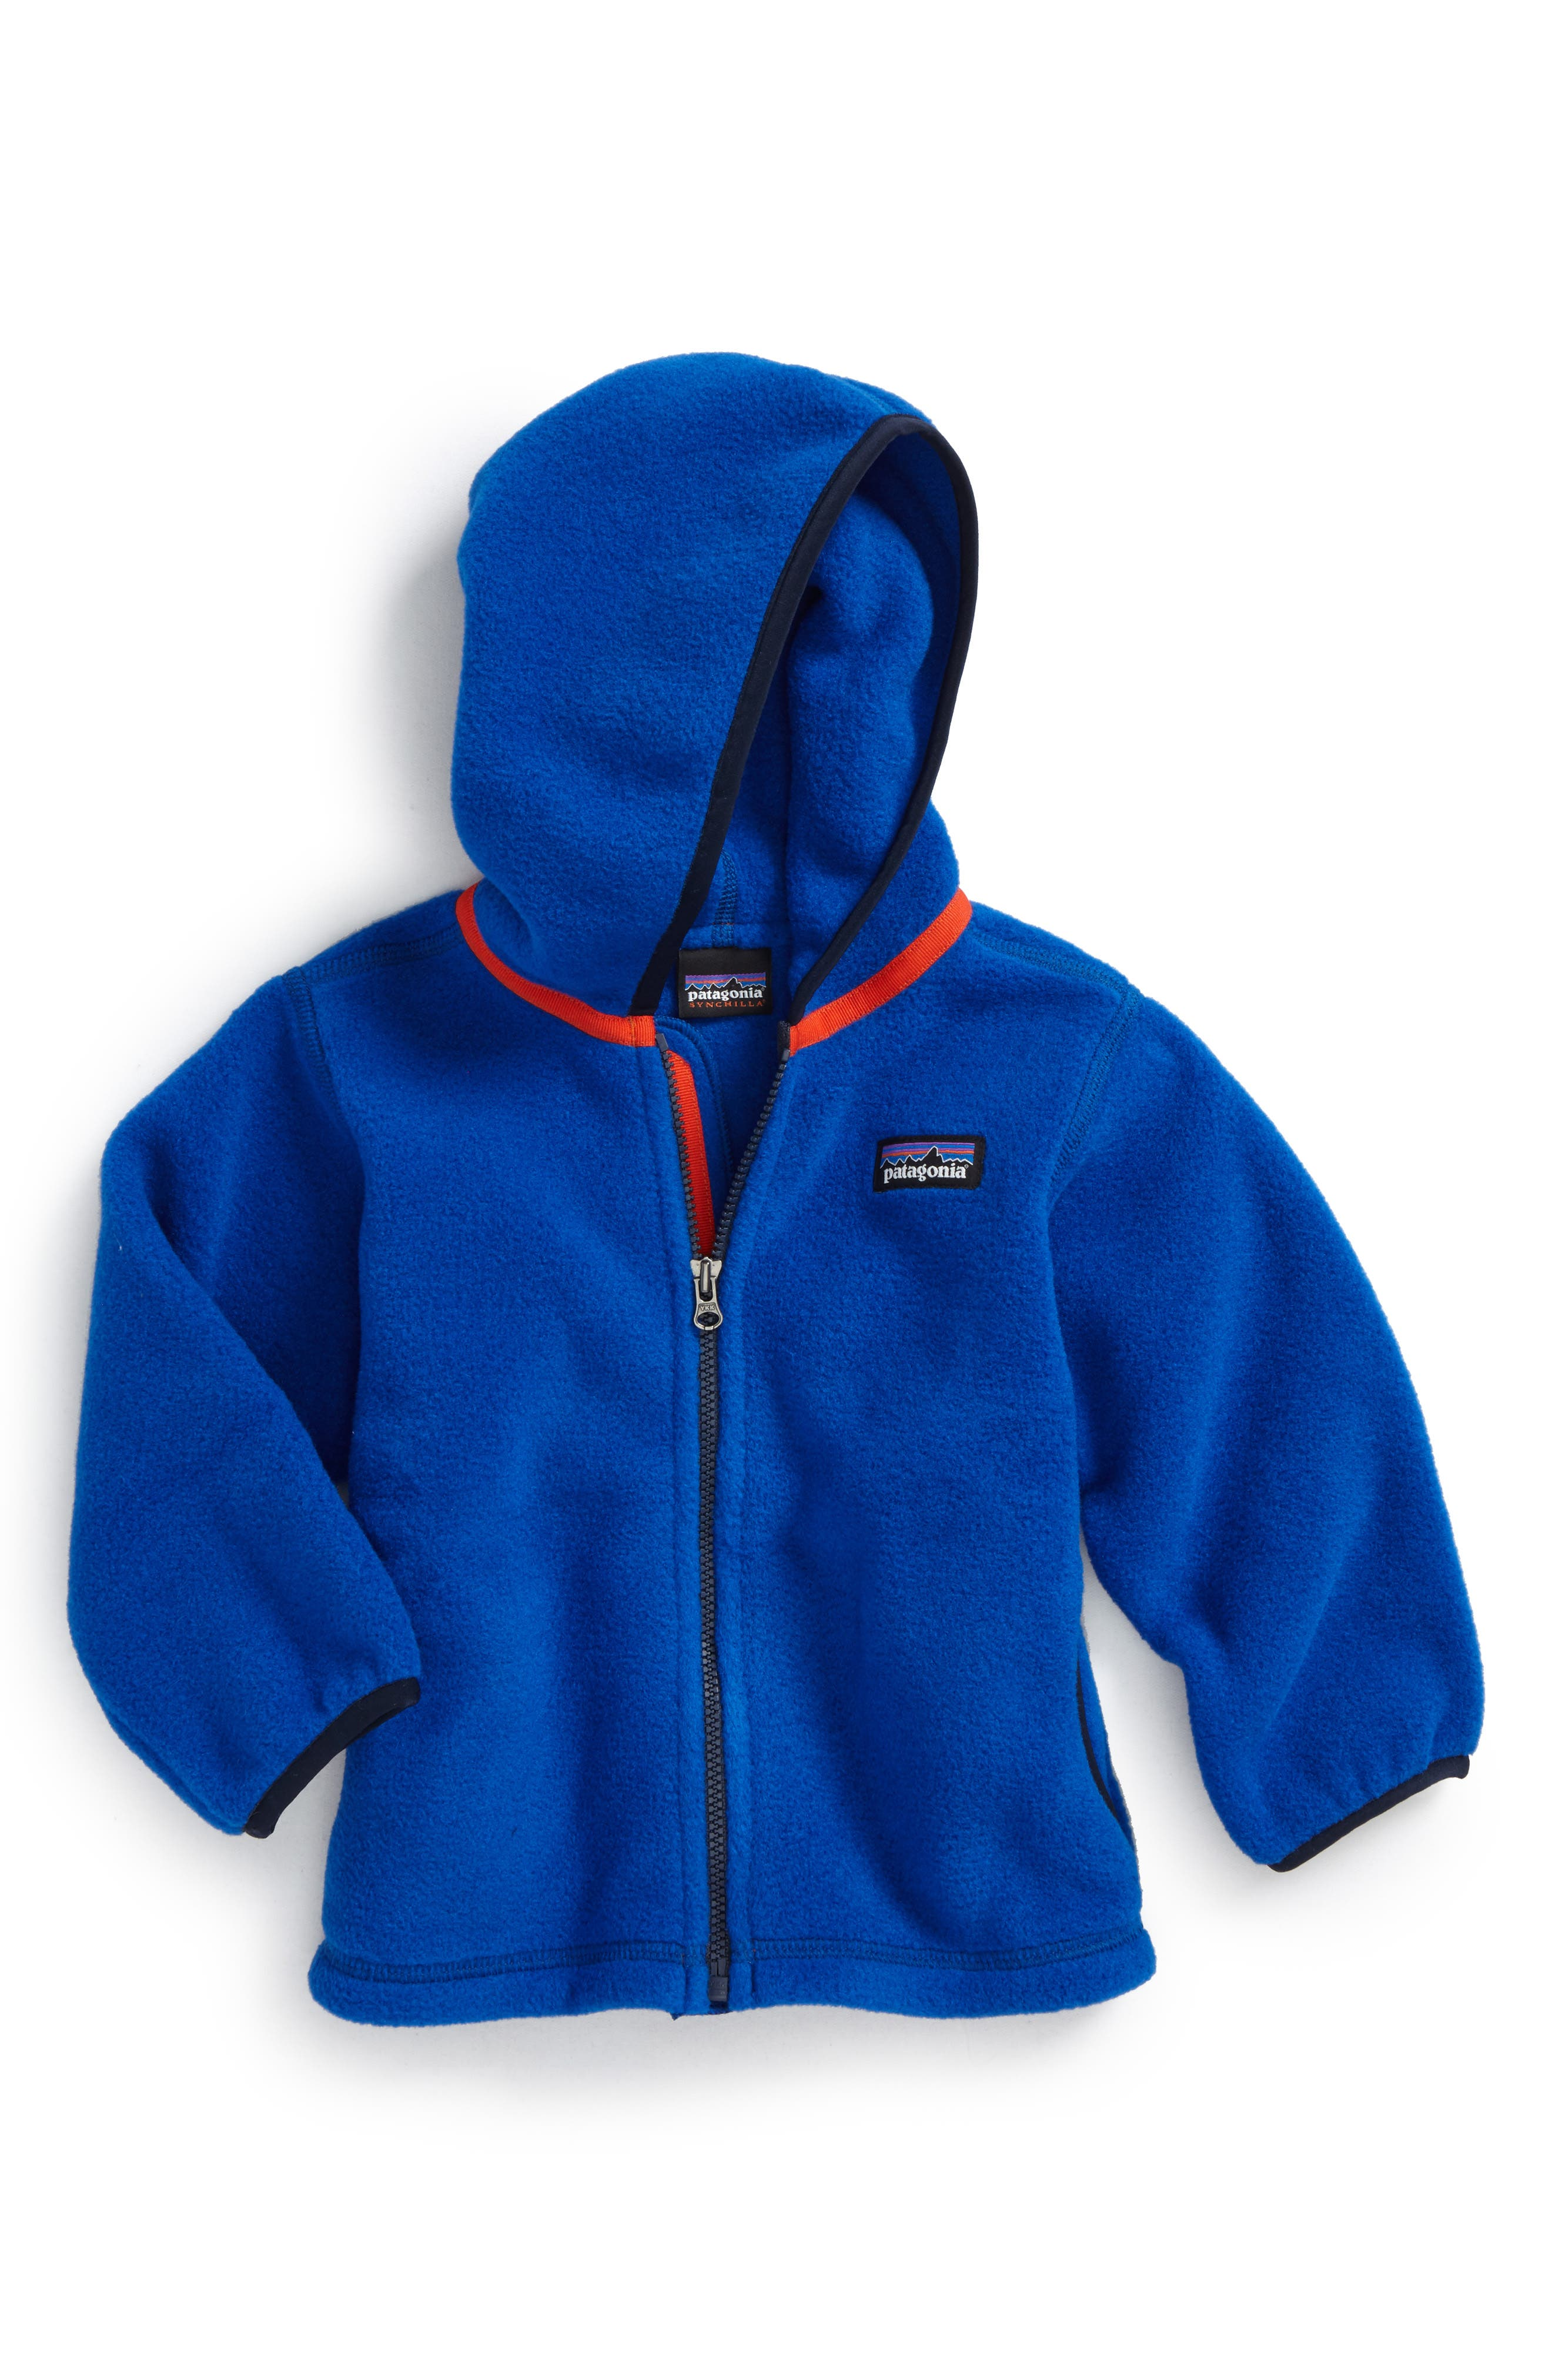 Alternate Image 1 Selected - Patagonia Synchilla® Fleece Cardigan (Baby Boys)